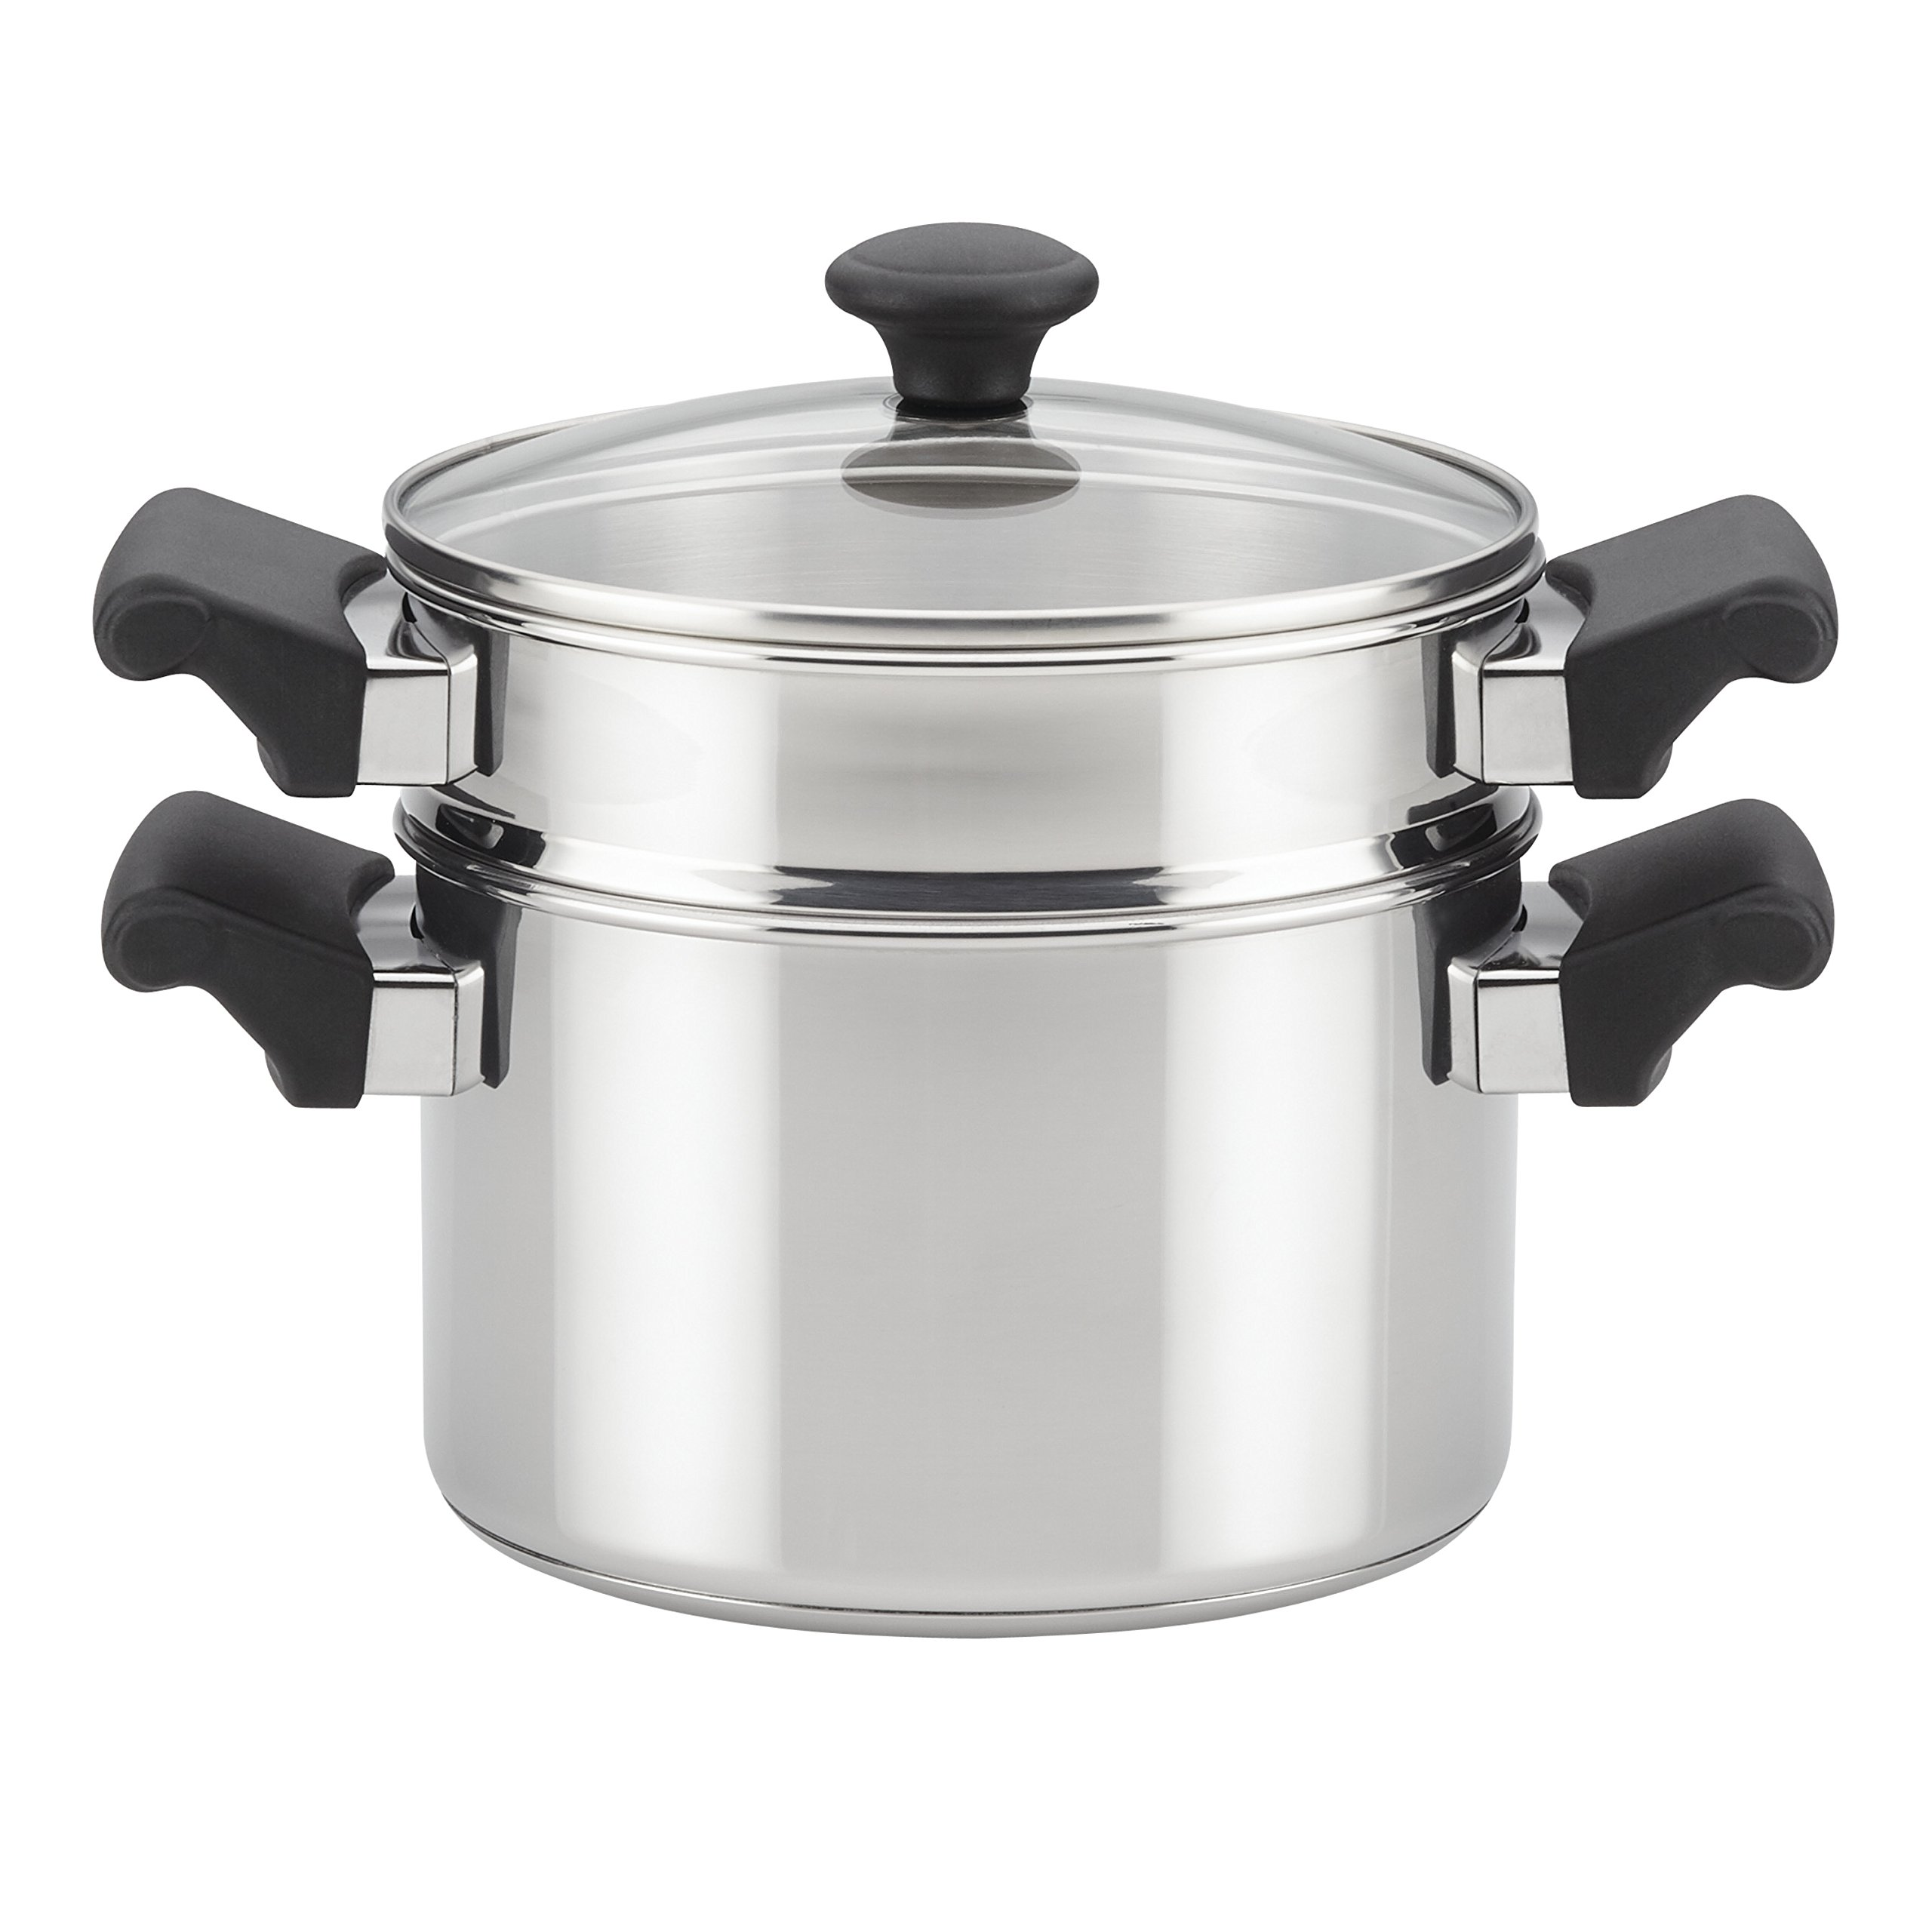 Farberware Classic Traditions Stainless Steel Stack 'N' Steam Covered Saucepot and Steamer, 3-Quart